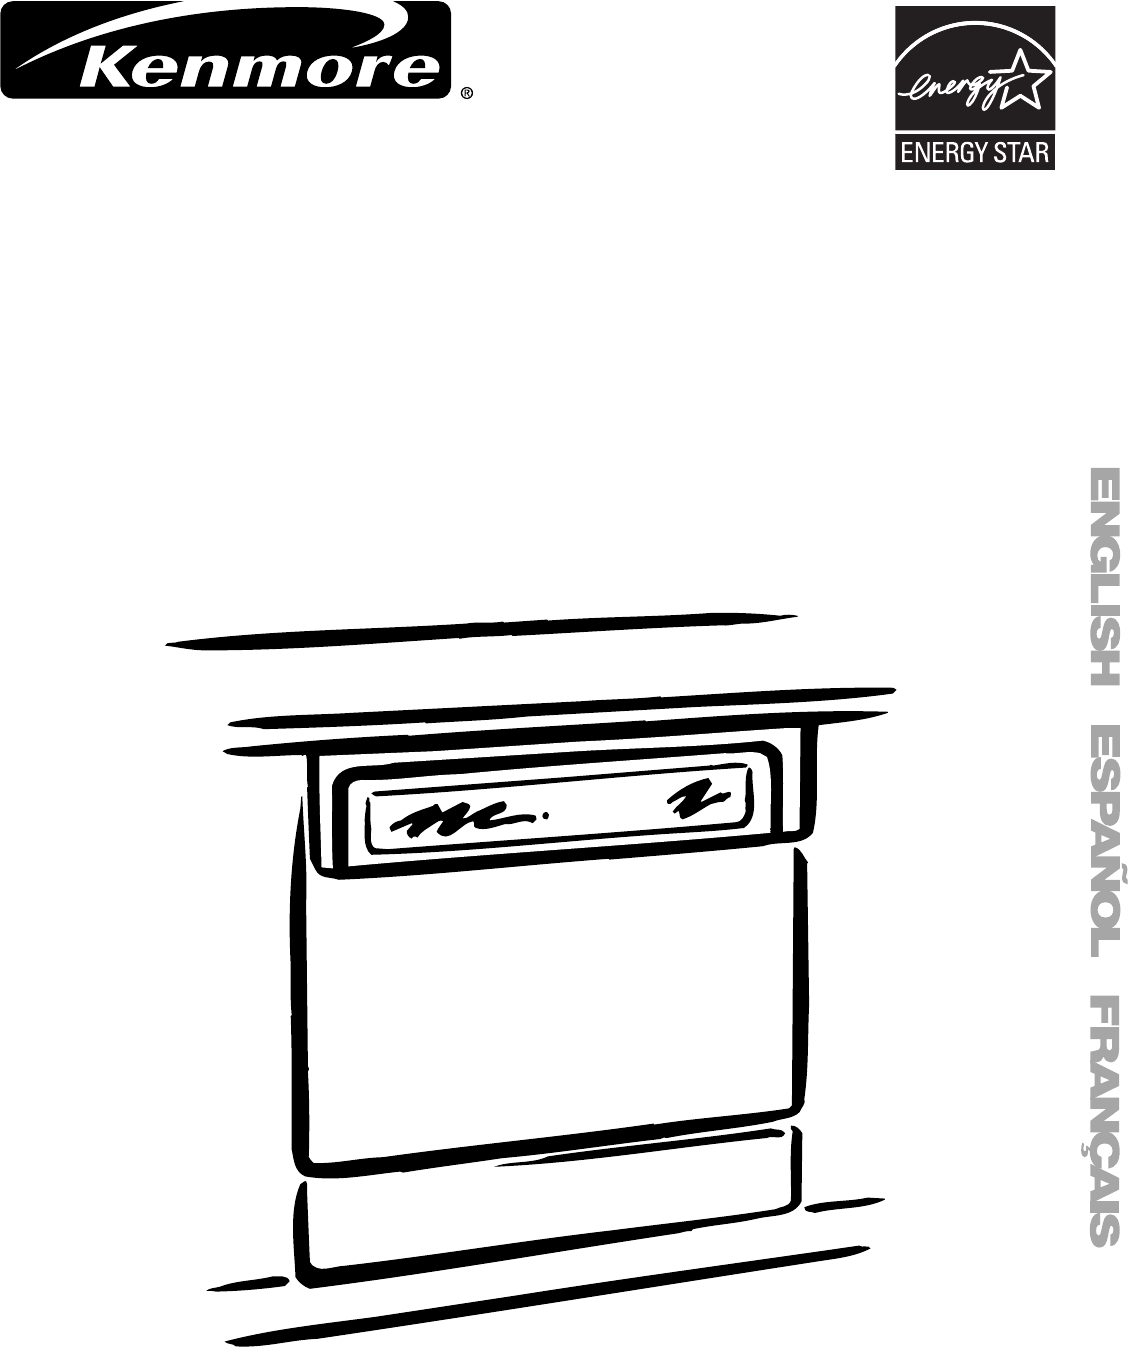 Kenmore Dishwasher 665.1776 User Guide | ManualsOnline.com on estate dishwasher schematic, dryer schematic, maytag dishwasher schematic, asko dishwasher schematic, dishwasher drain schematic, whirlpool dishwasher schematic, lg dishwasher schematic, kitchenaid dishwasher schematic, bosch dishwasher schematic, kenmore electric dryer wiring diagram, frigidaire dishwasher schematic, maytag washer schematic, kenmore dryer repair manual, ge washer schematic, washing machine schematic, whirlpool washer schematic, kenmore ice maker wiring-diagram, ge dishwasher schematic, ceiling fan schematic, miele dishwasher schematic,